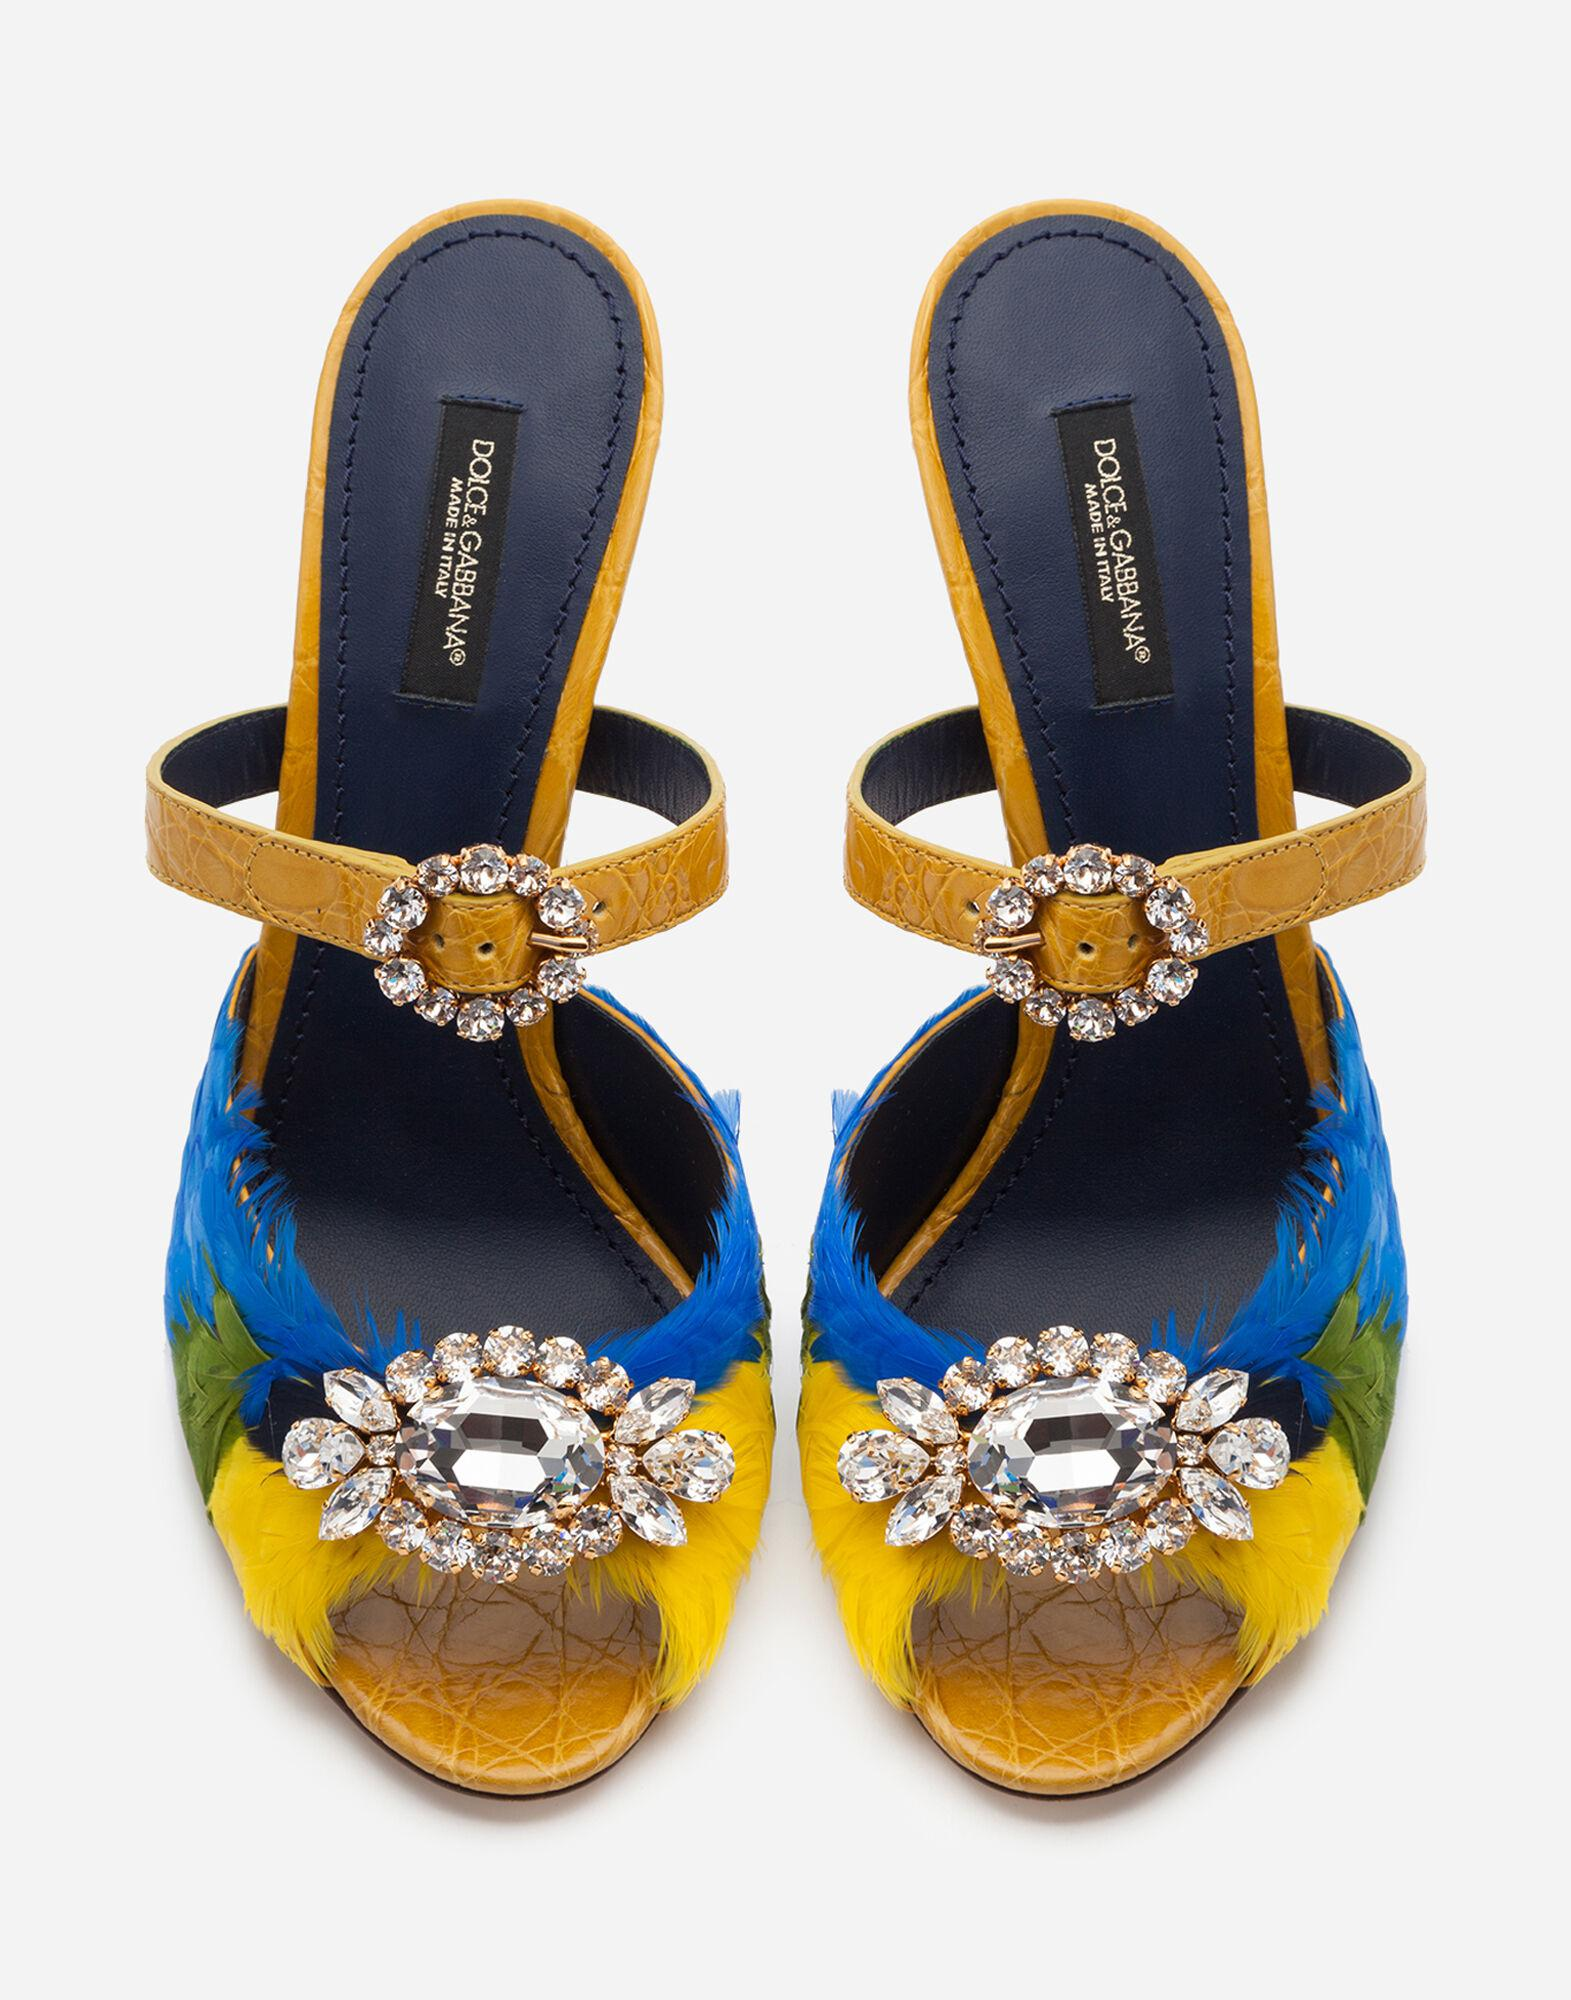 Crocodile flank leather and feather mules with jewel embroidery 3